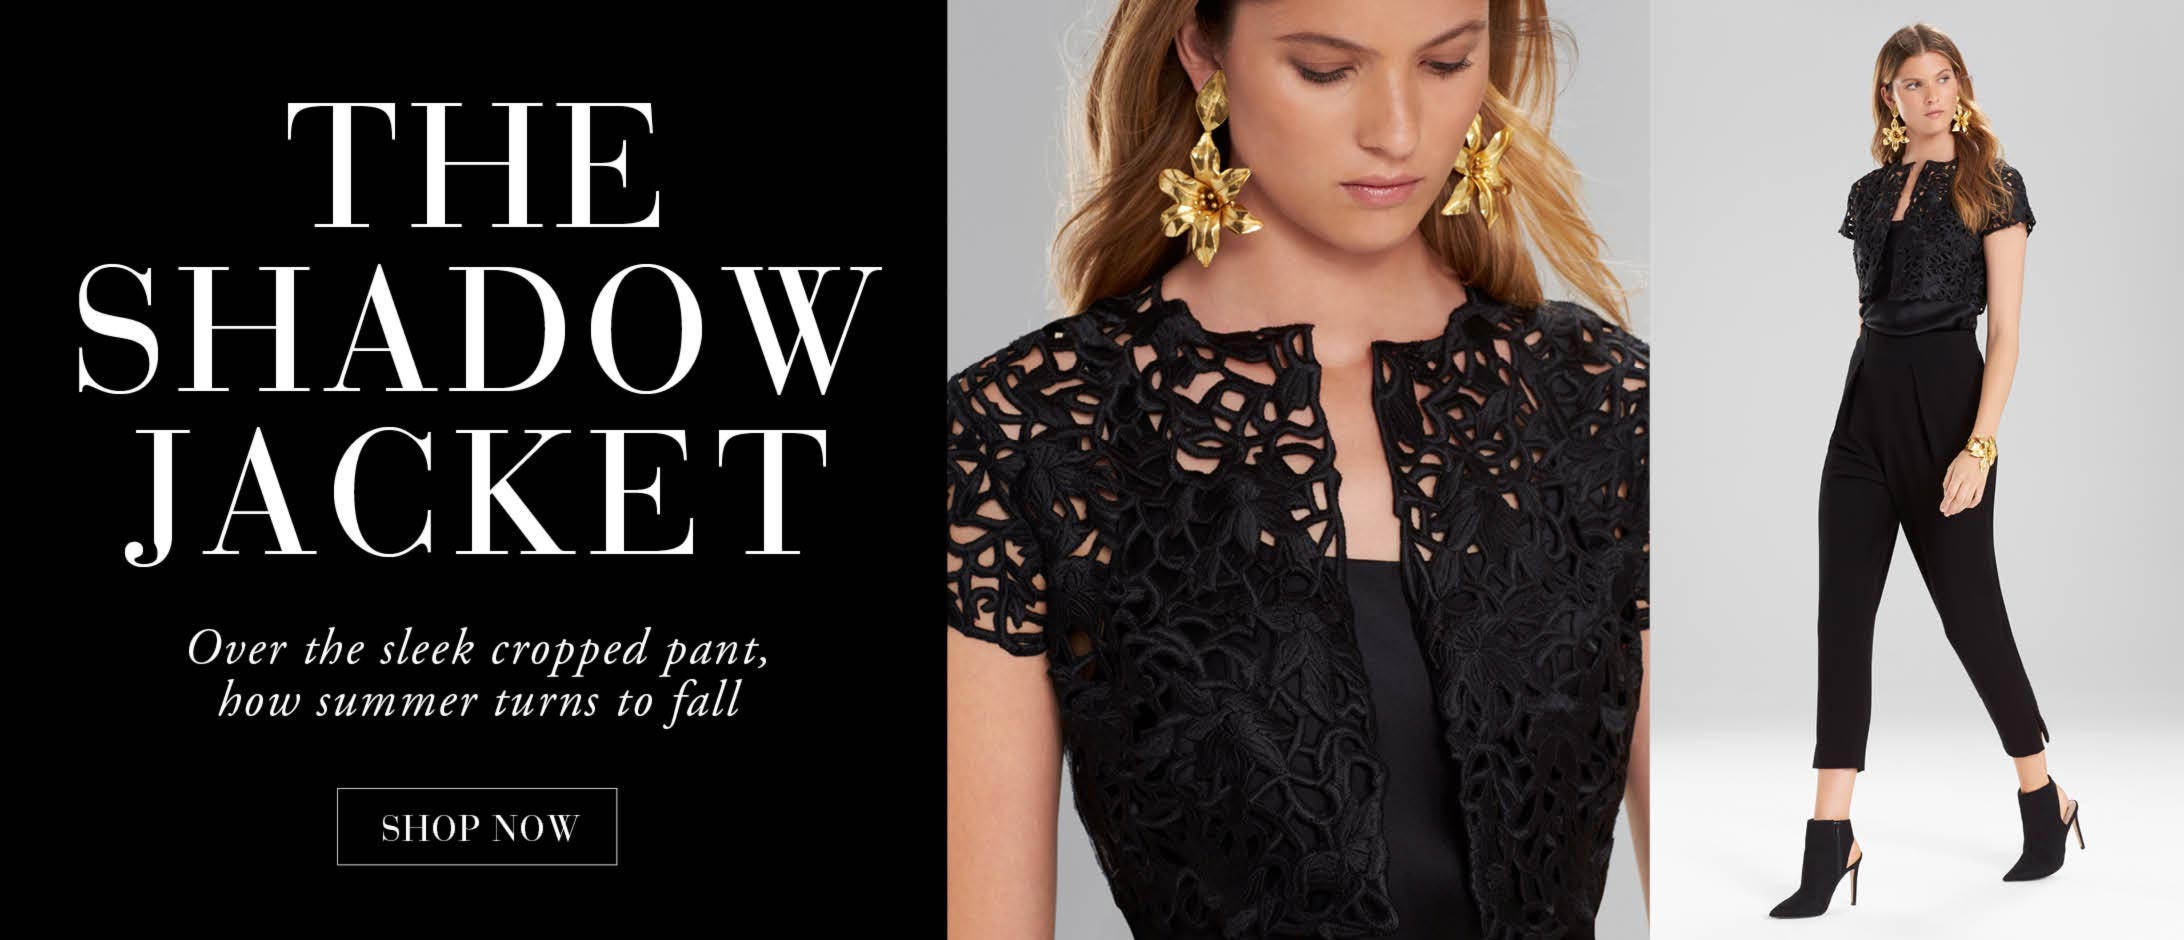 Josie Natori: Summer Turns to Fall – Shop Ready-To-Wear